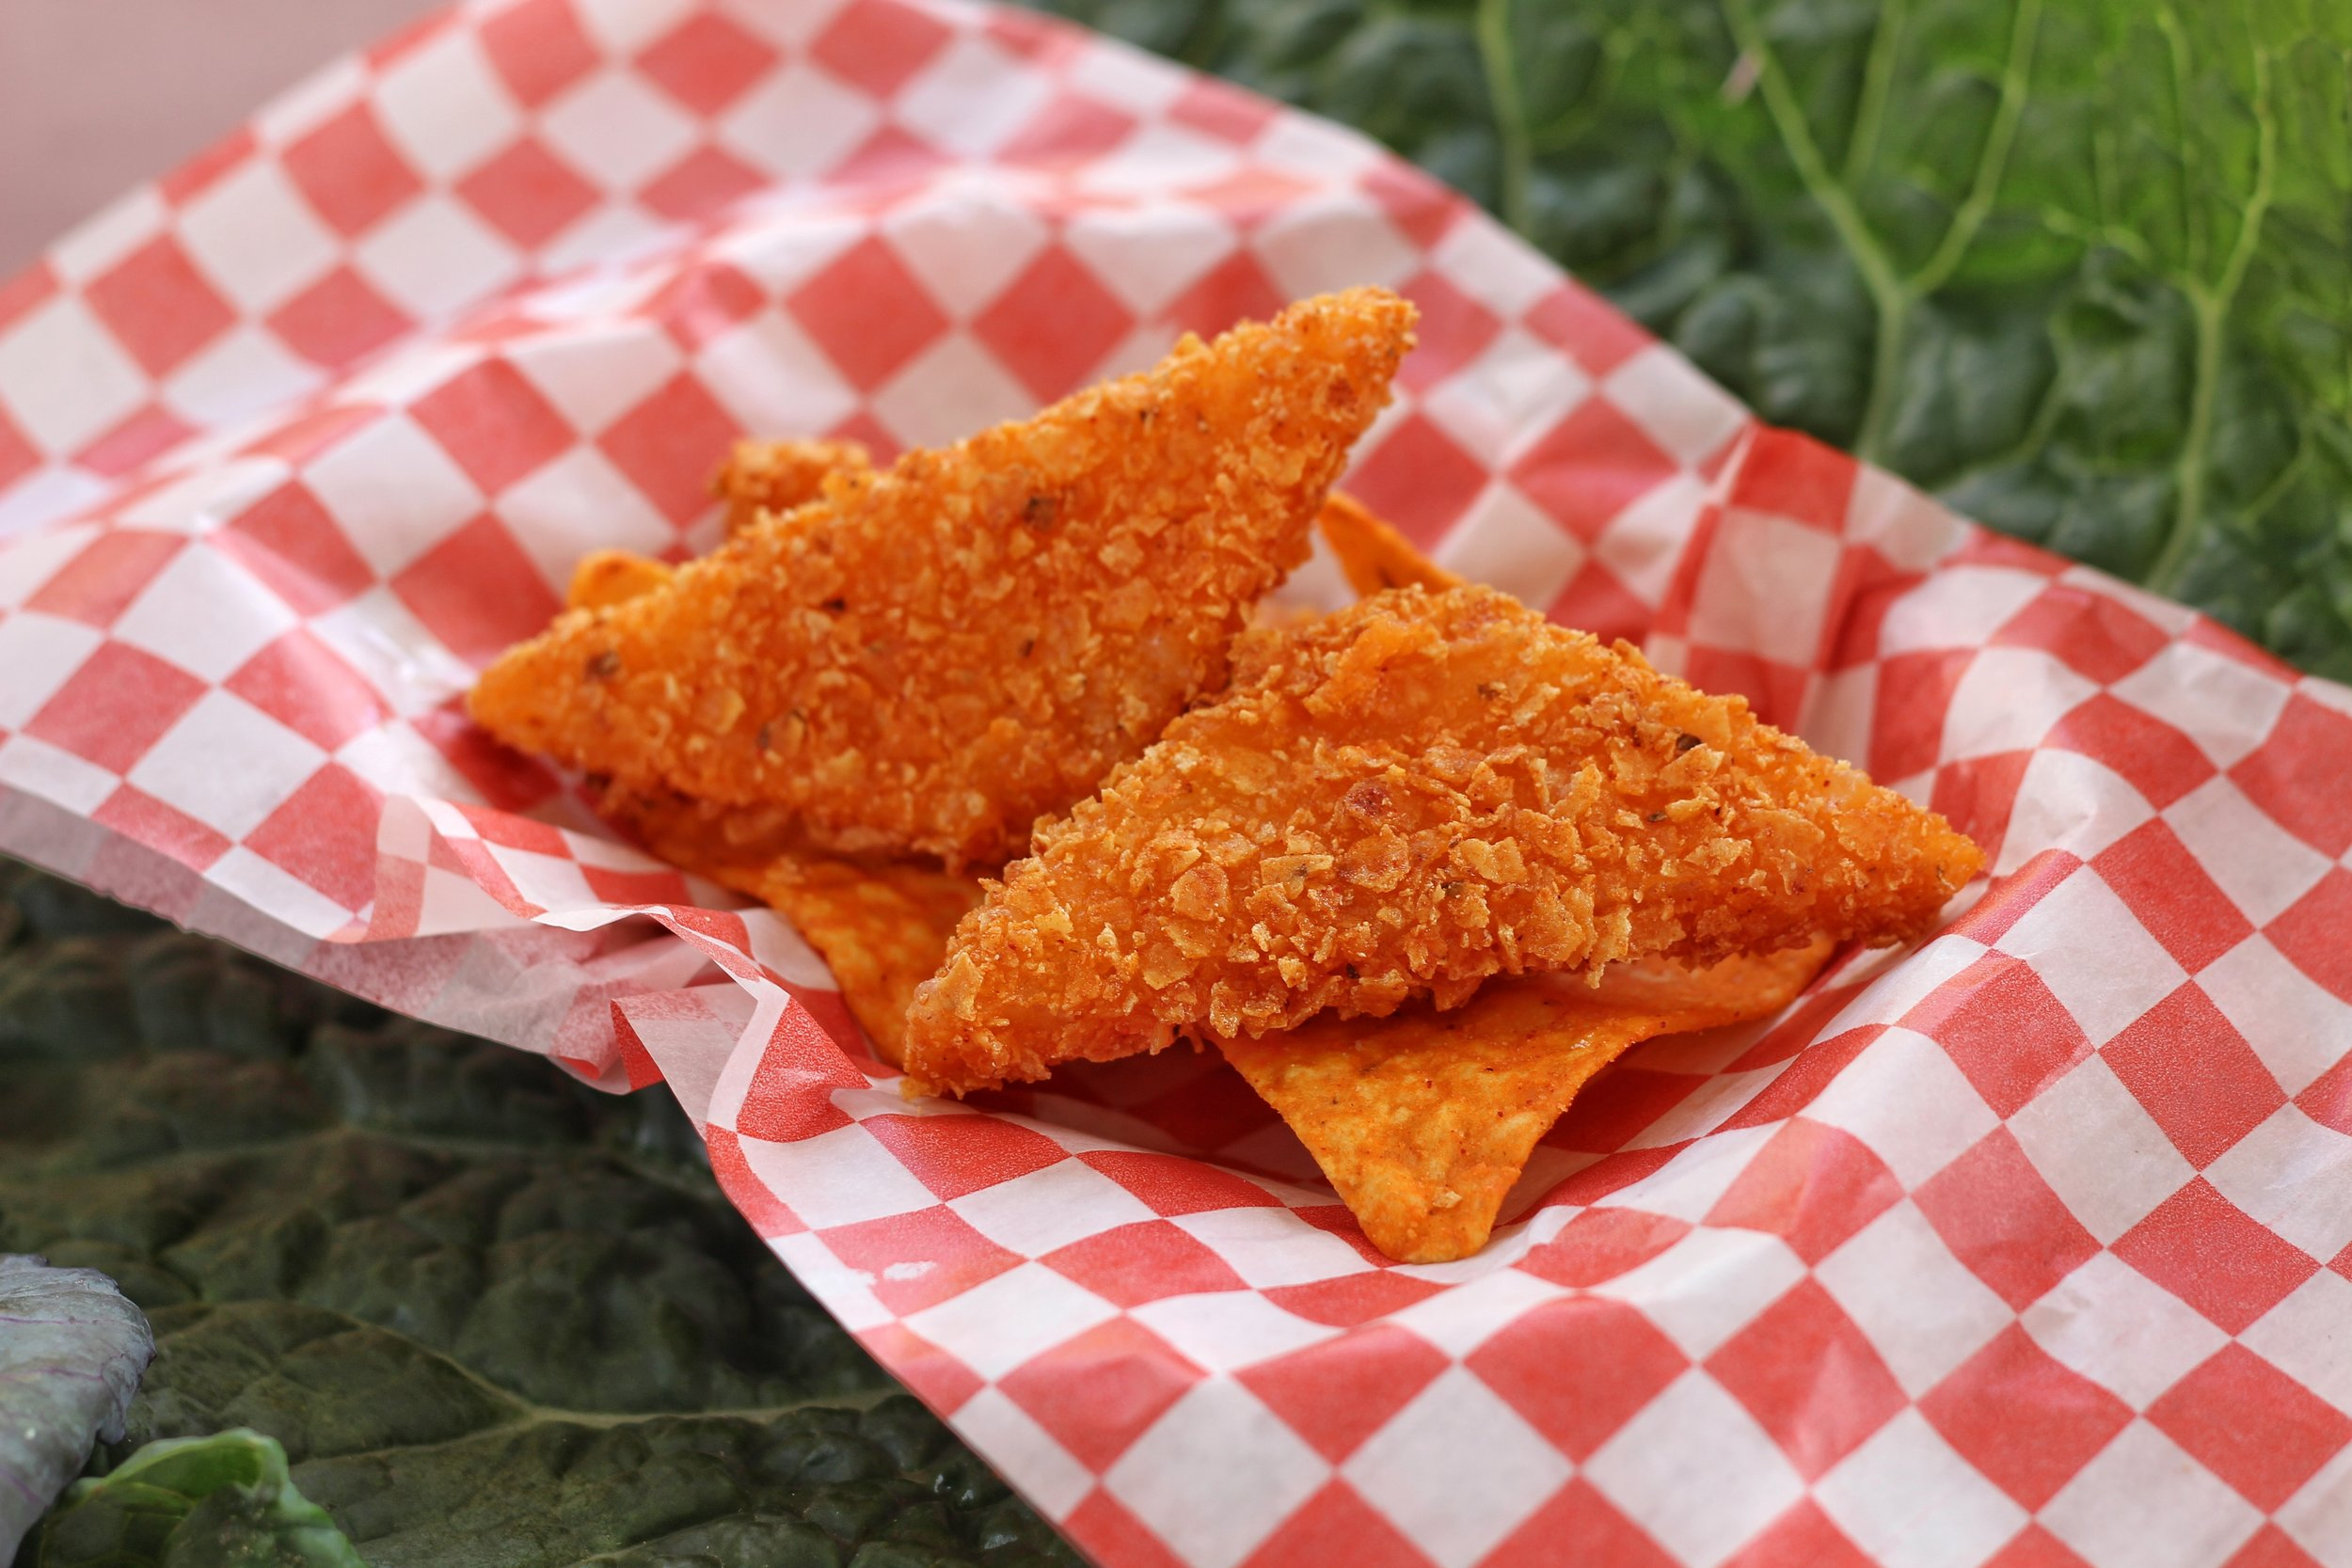 Marble cheddar coated in a Dorito crust and deep fried.